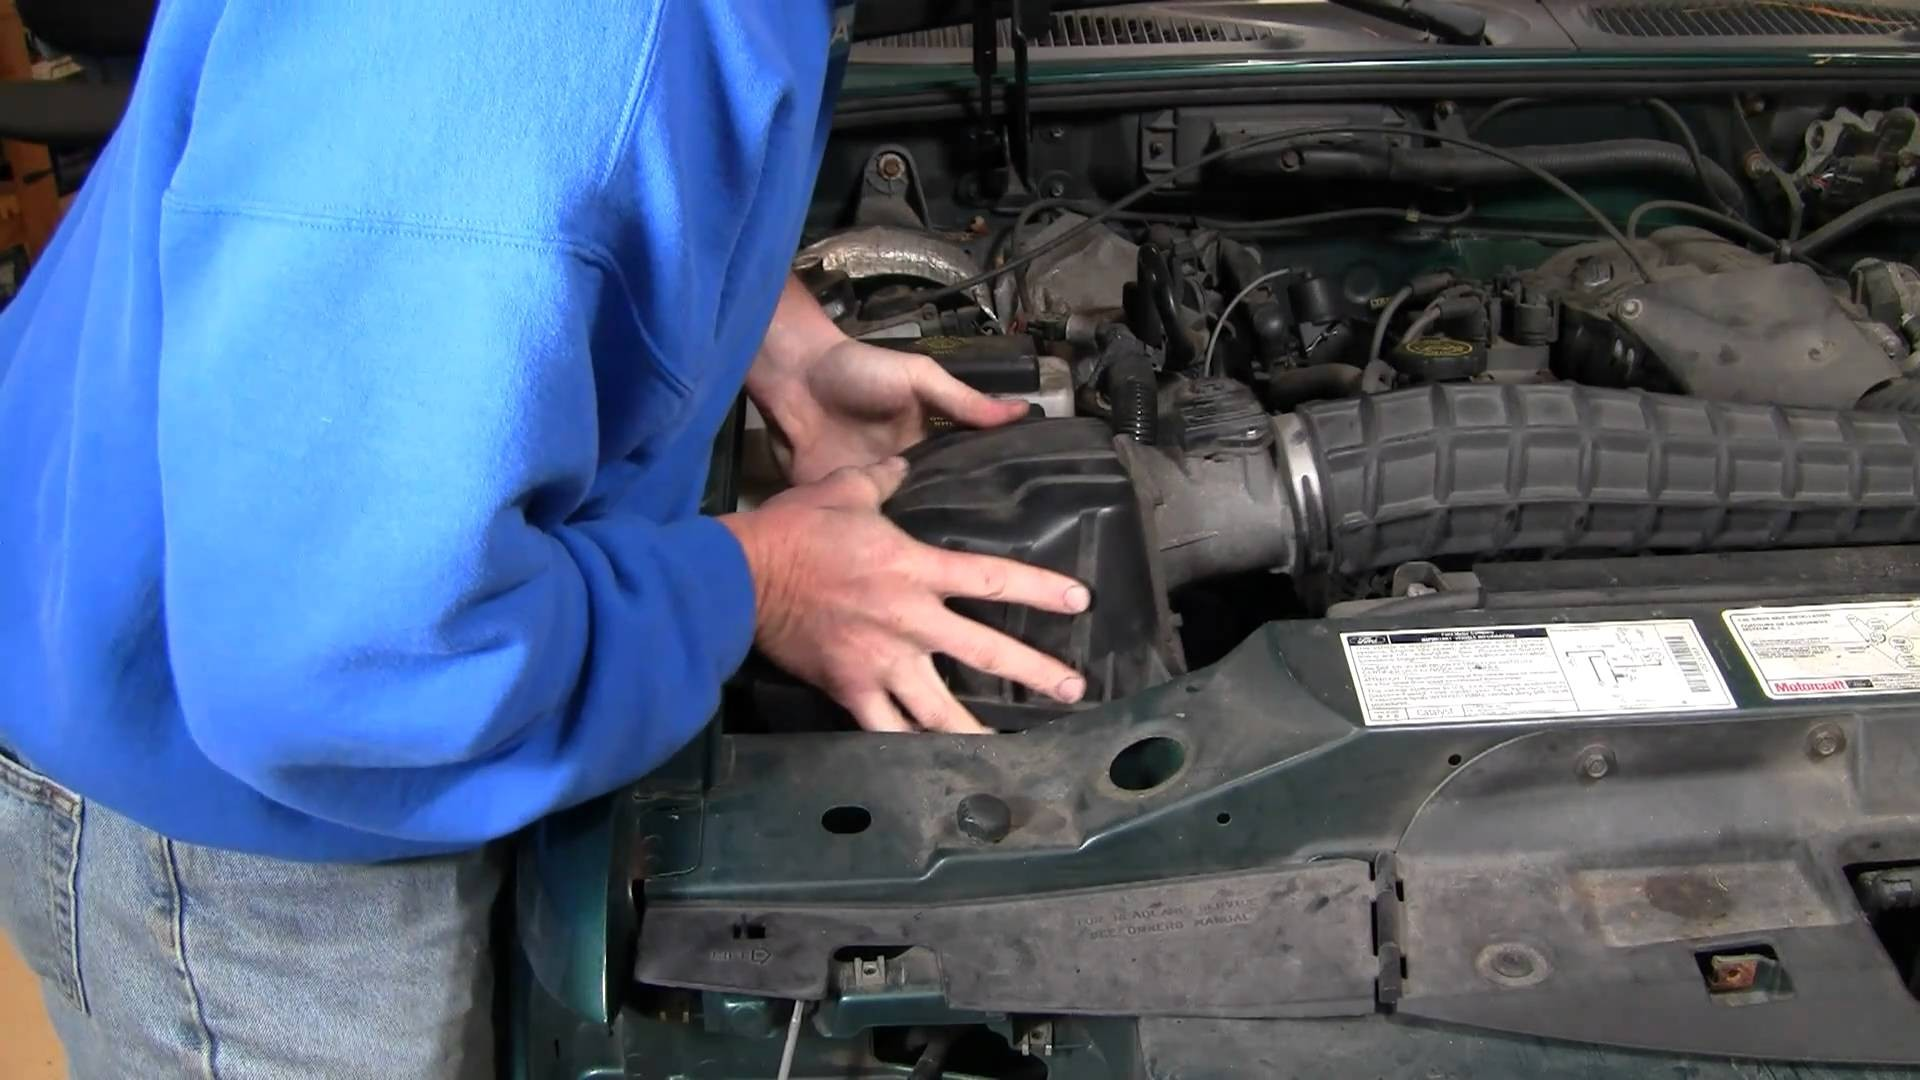 hight resolution of how to install replace air filter ford explorer 4 0l 97 05 1aauto 2003 ford explorer sport trac engine diagram my wiring diagram